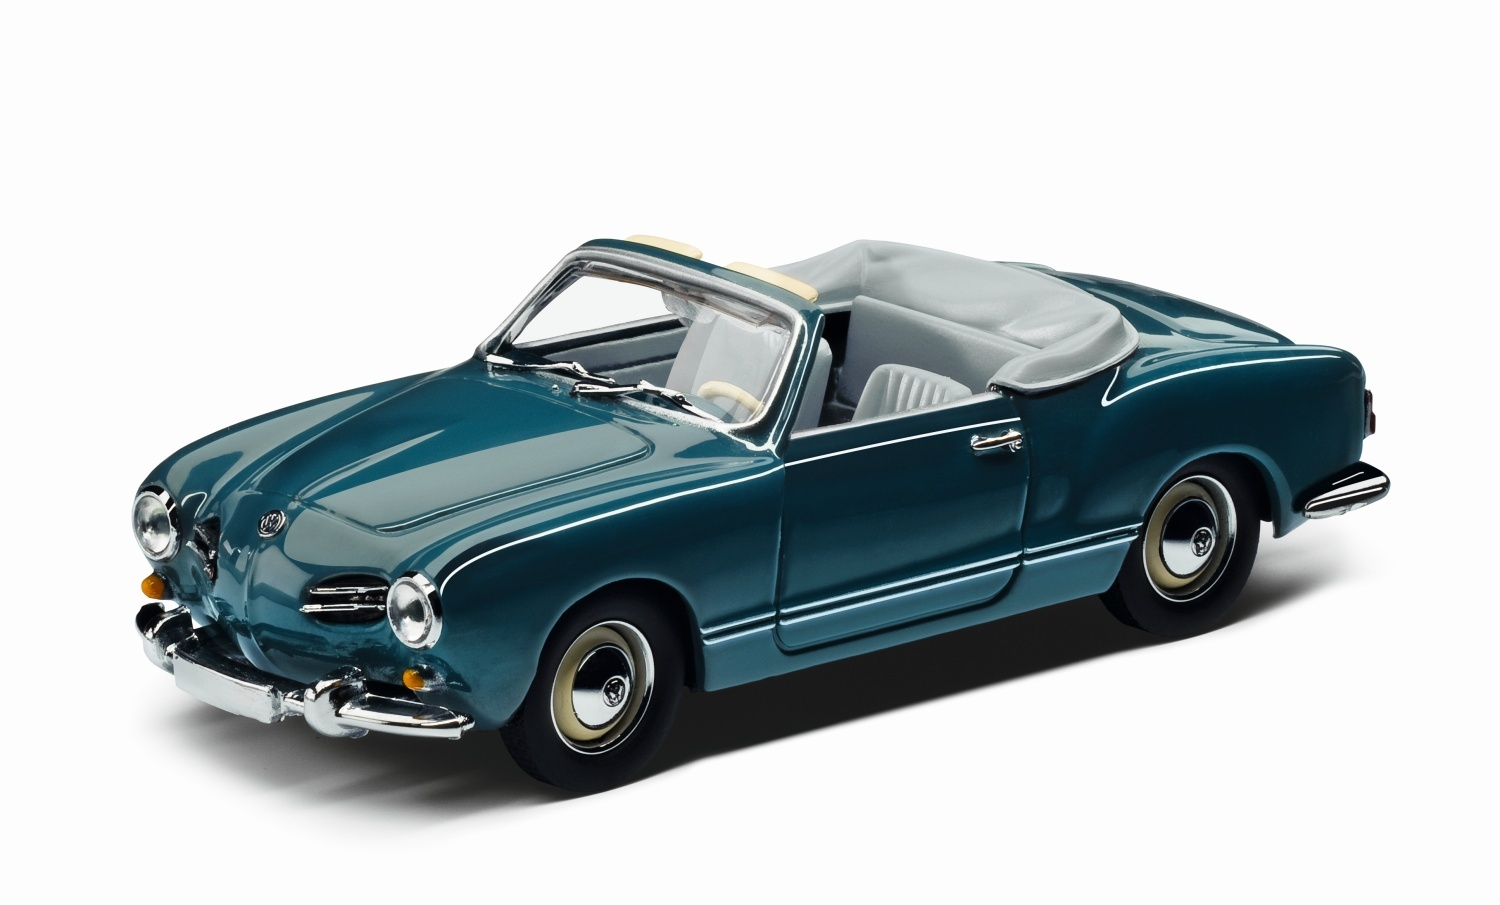 Karmann Ghia 1957, escala 1:43